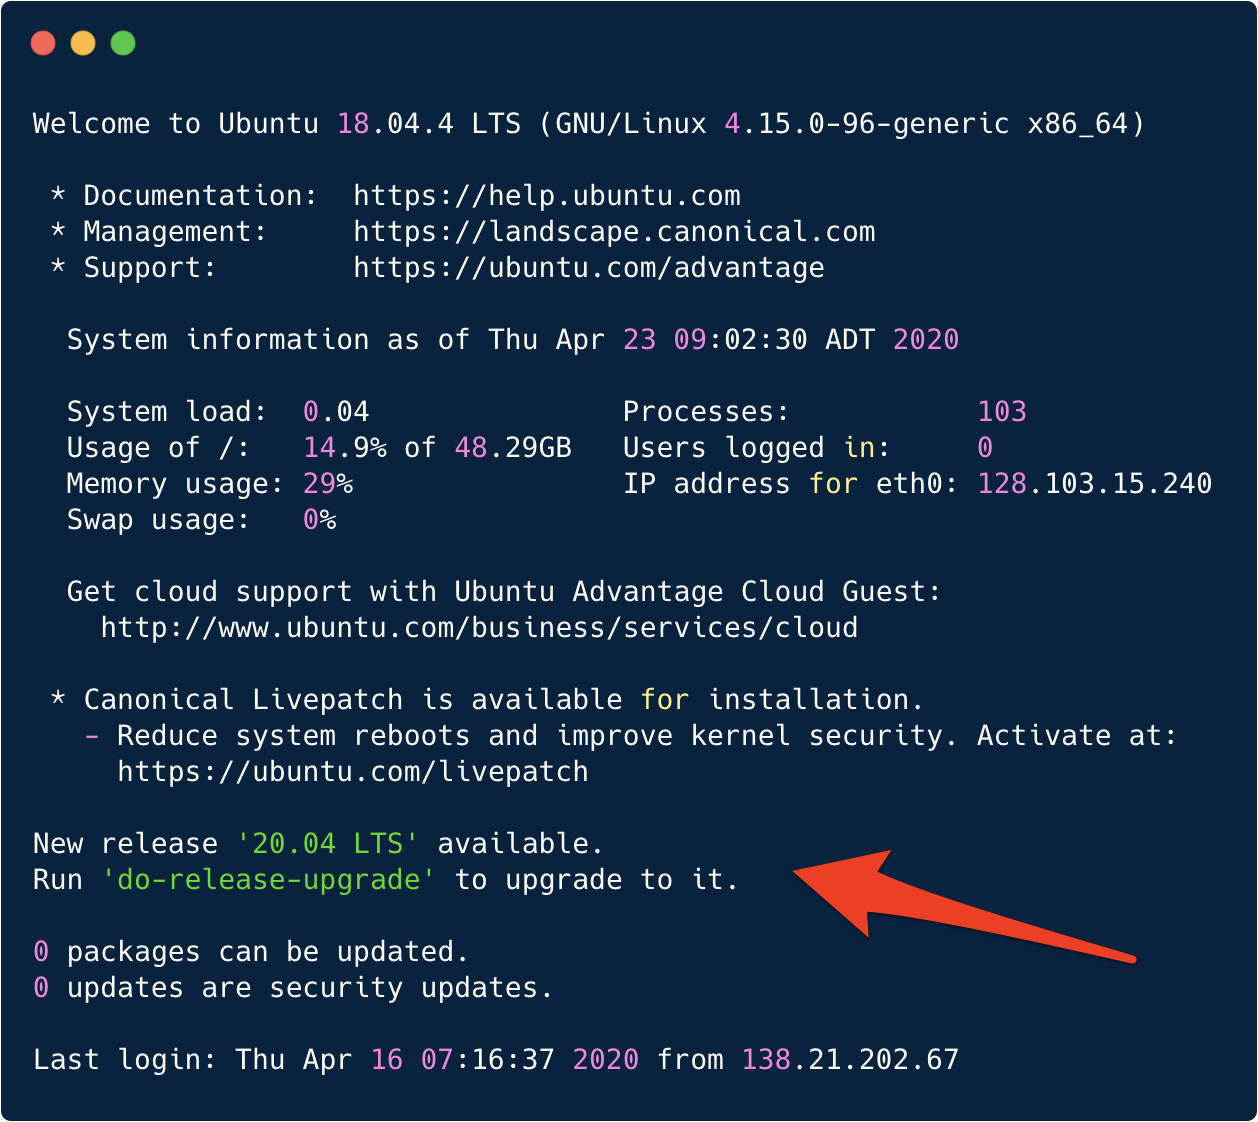 SSH message that displays when a new LTS release is available